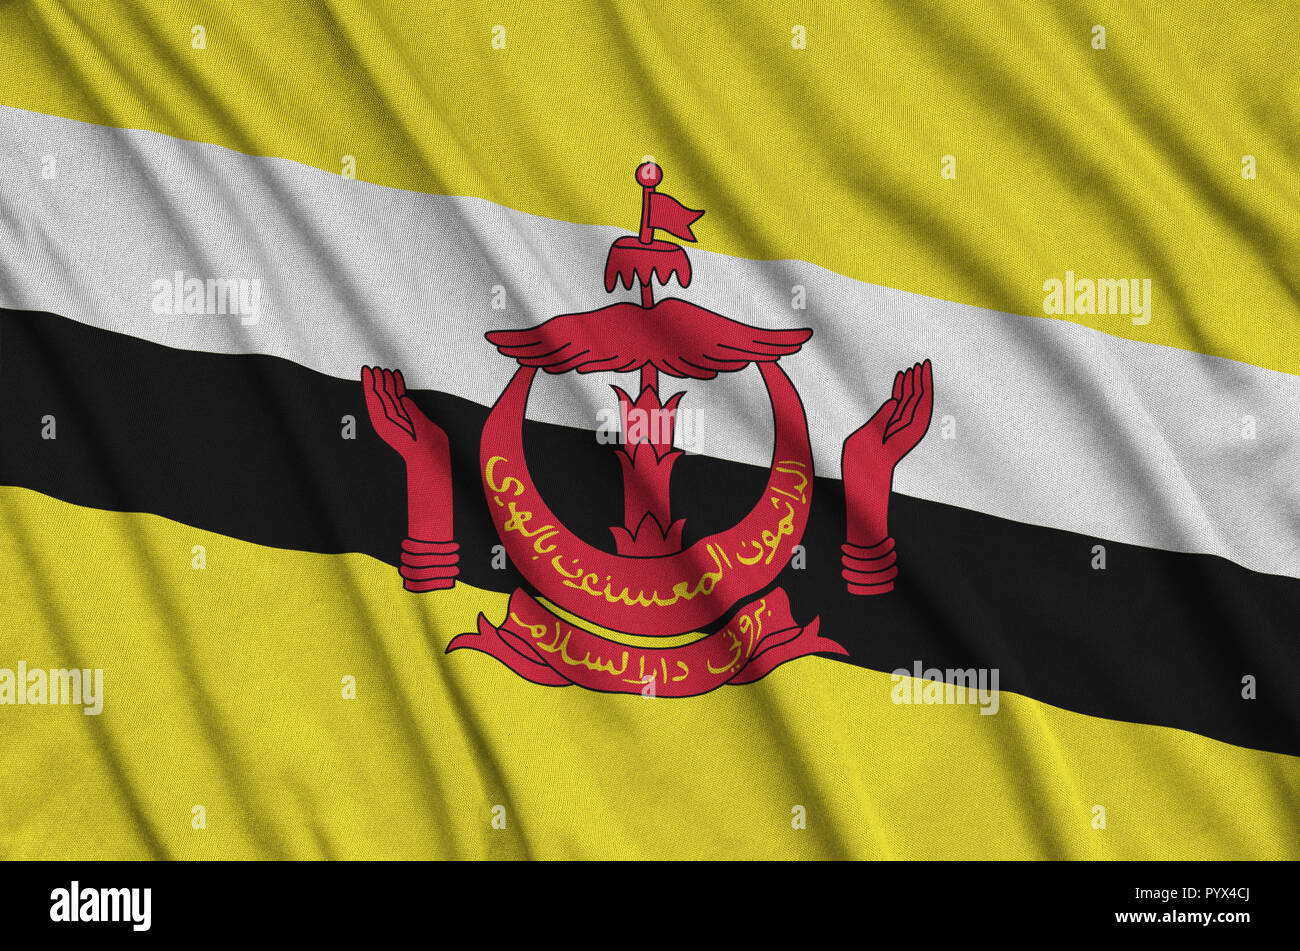 Brunei Darussalam flag  is depicted on a sports cloth fabric with many folds. Sport team waving banner - Stock Image